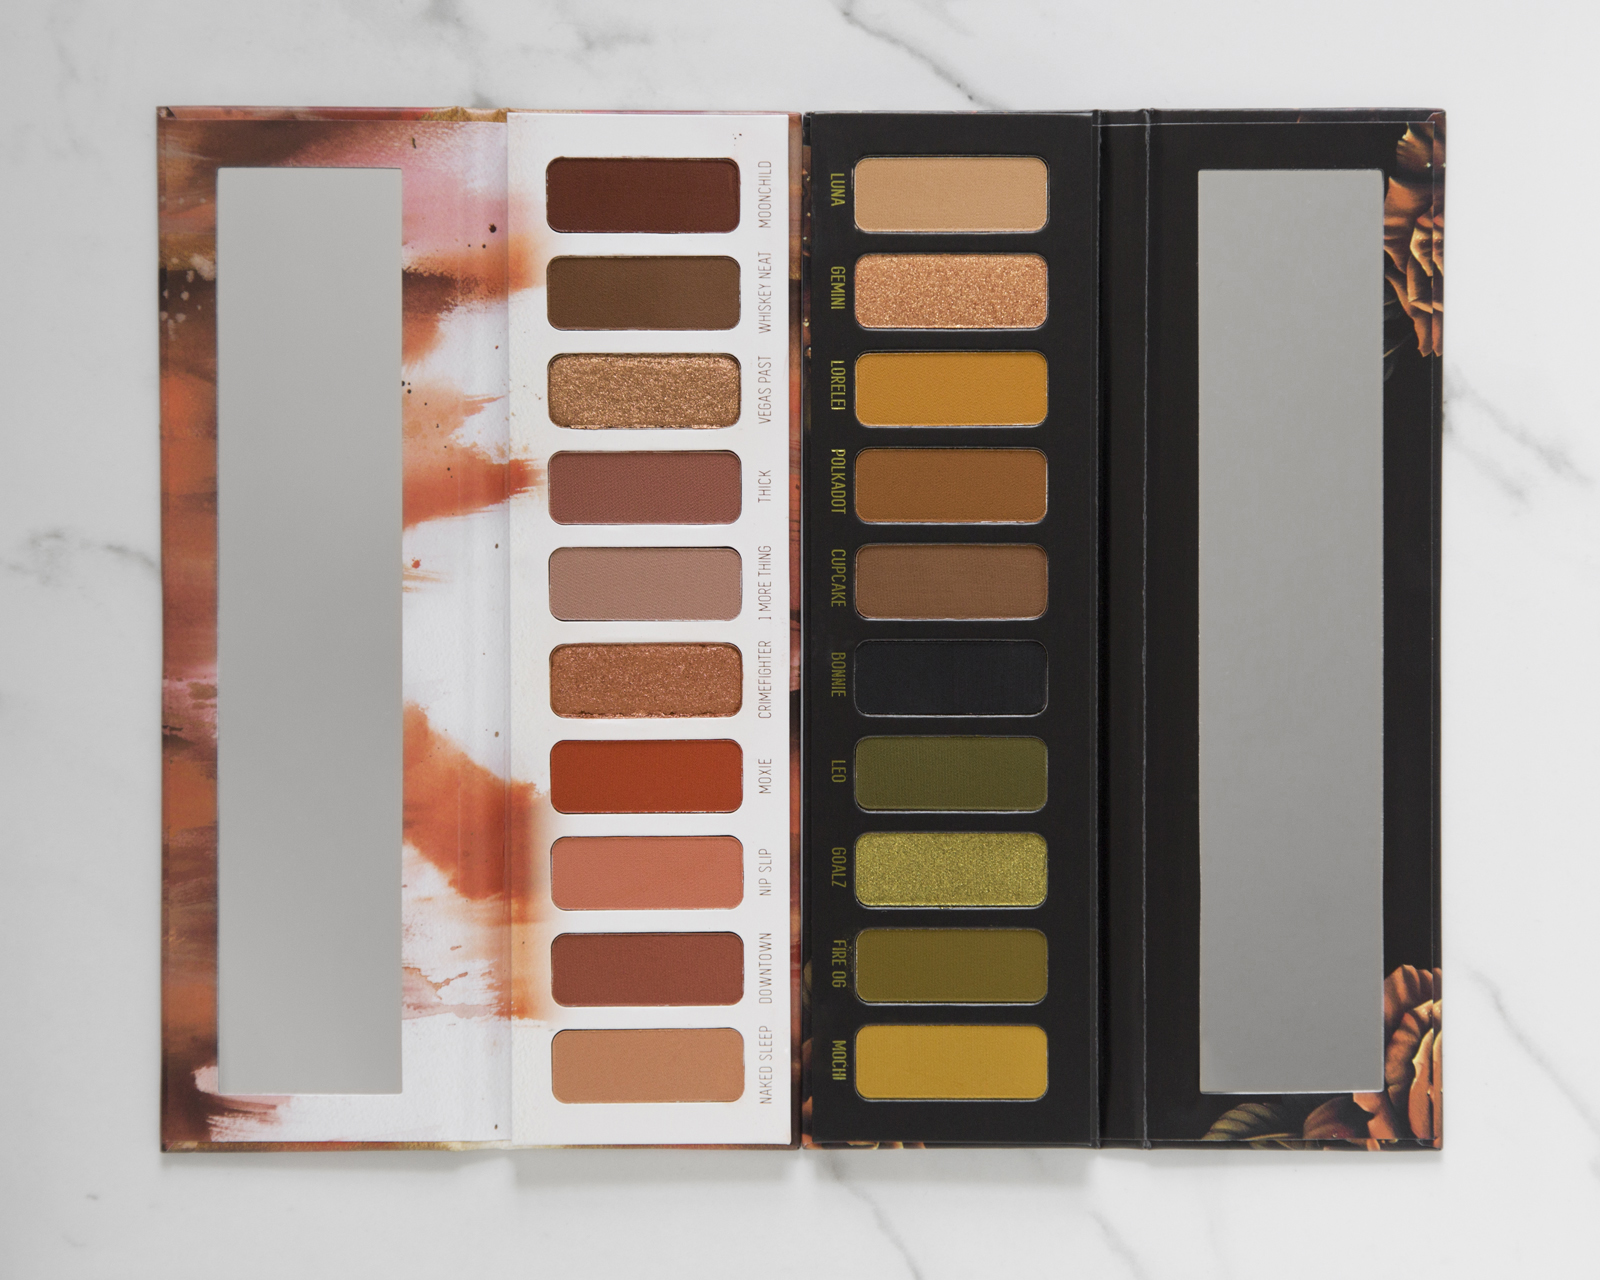 Melt Twenty Seven And Gemini Palettes.jpg